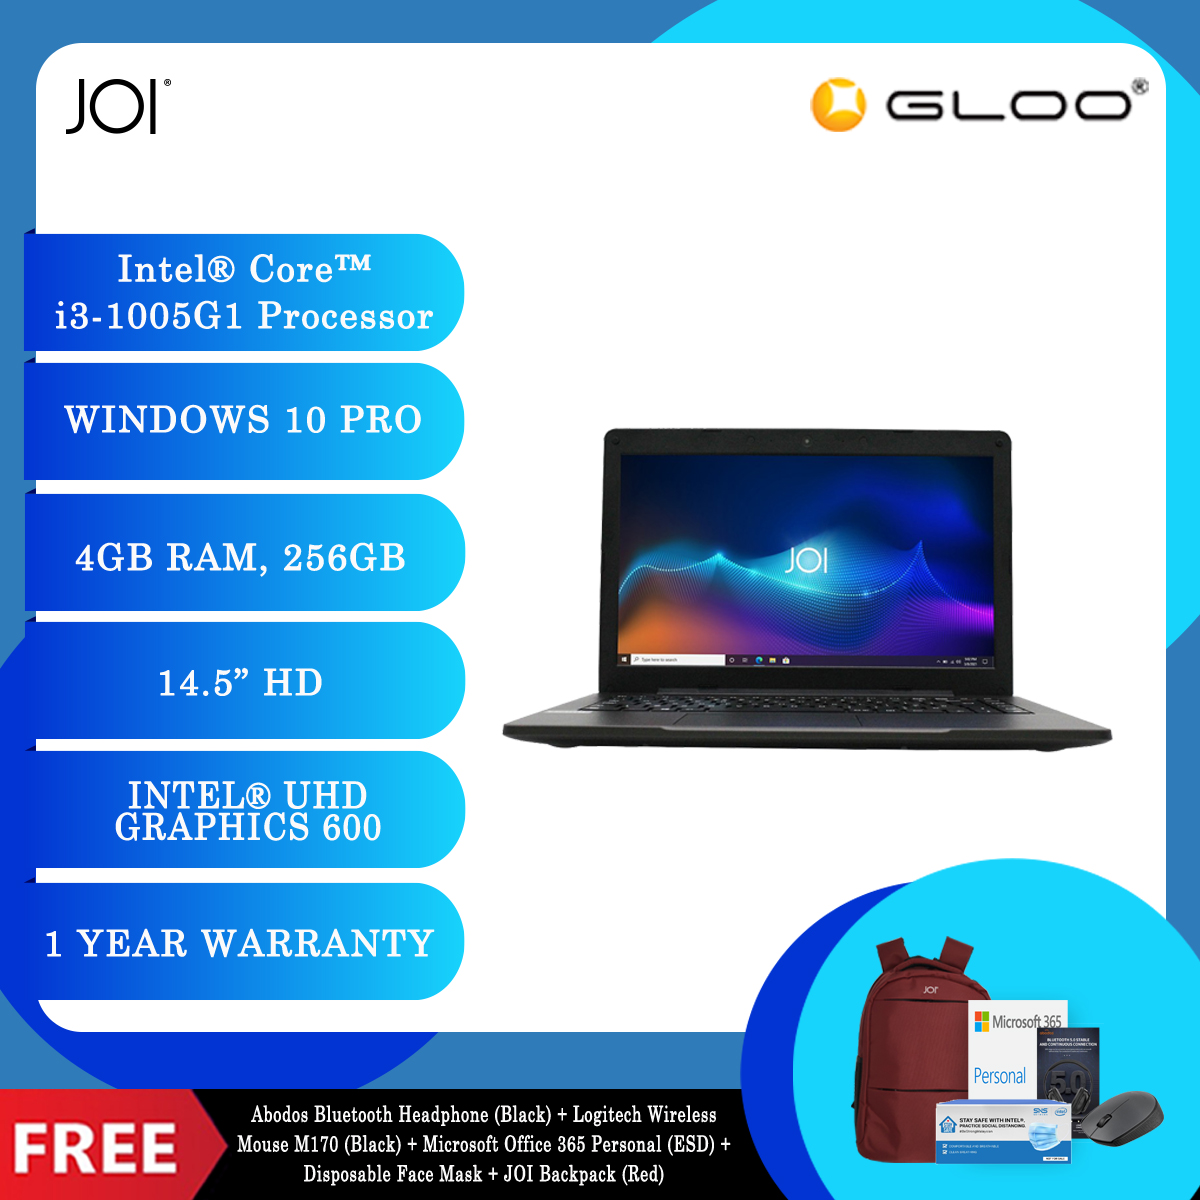 JOI Classmate 30 + Abodos Bluetooth Headphone Black  + Logitech Wireless Mouse M170 (Black) + Microsoft Office 365 Personal (ESD) + Disposable 3 Layer Face Mask + JOI Backpack (Red) [BPPJOI0C30HMRD]